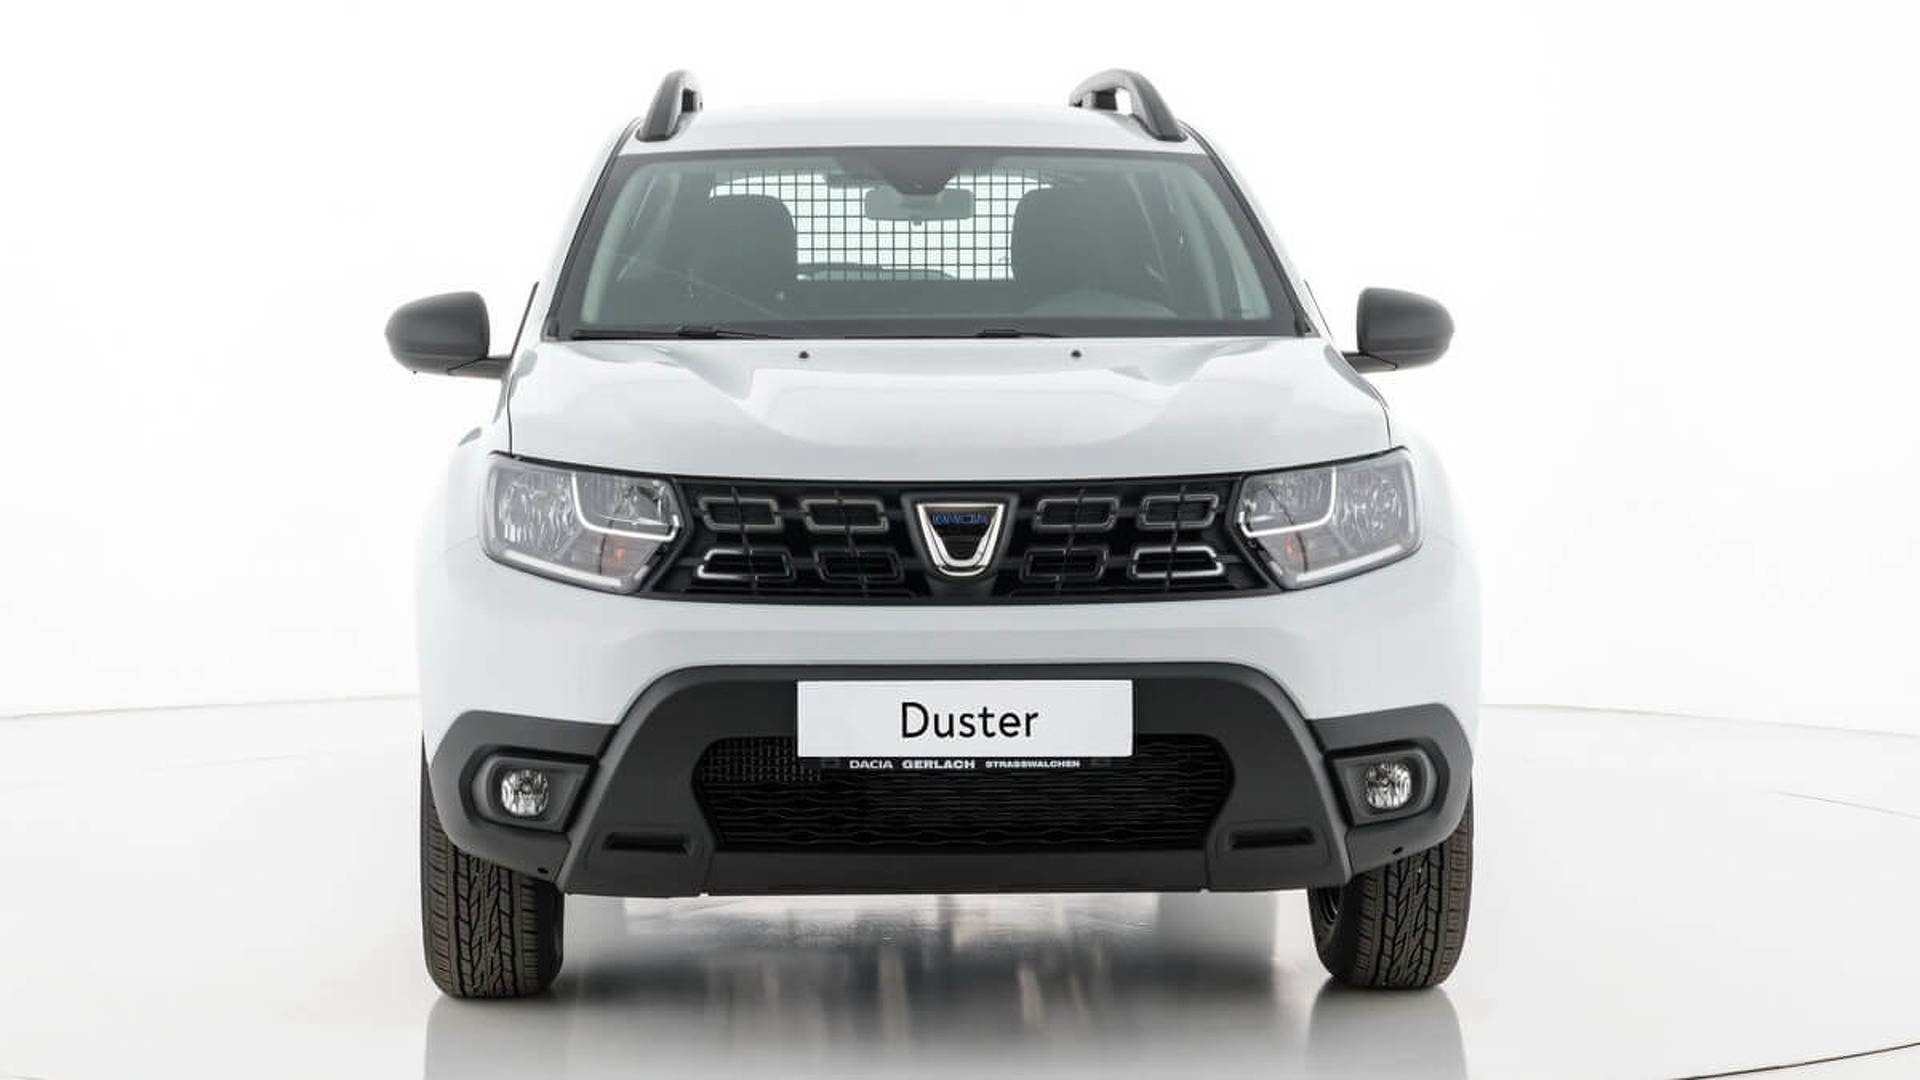 2018 dacia duster fiskal van conversion priced at eur 1 730 autoevolution. Black Bedroom Furniture Sets. Home Design Ideas